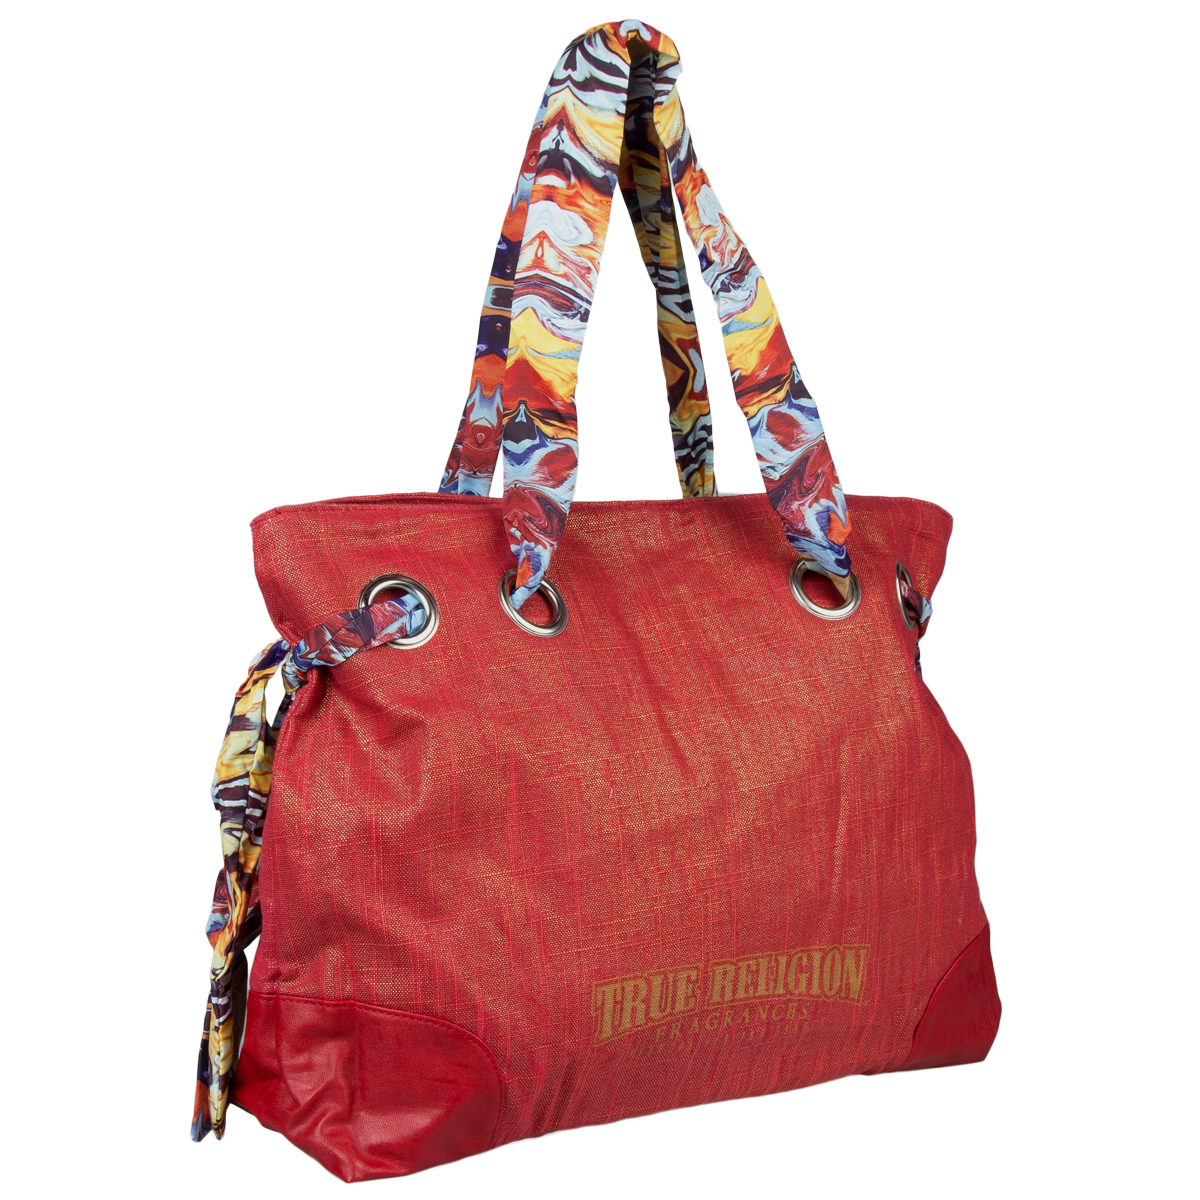 True Religion Women's Large Tote Bag Fashion Hand Purse Shoulder Shopper Travel